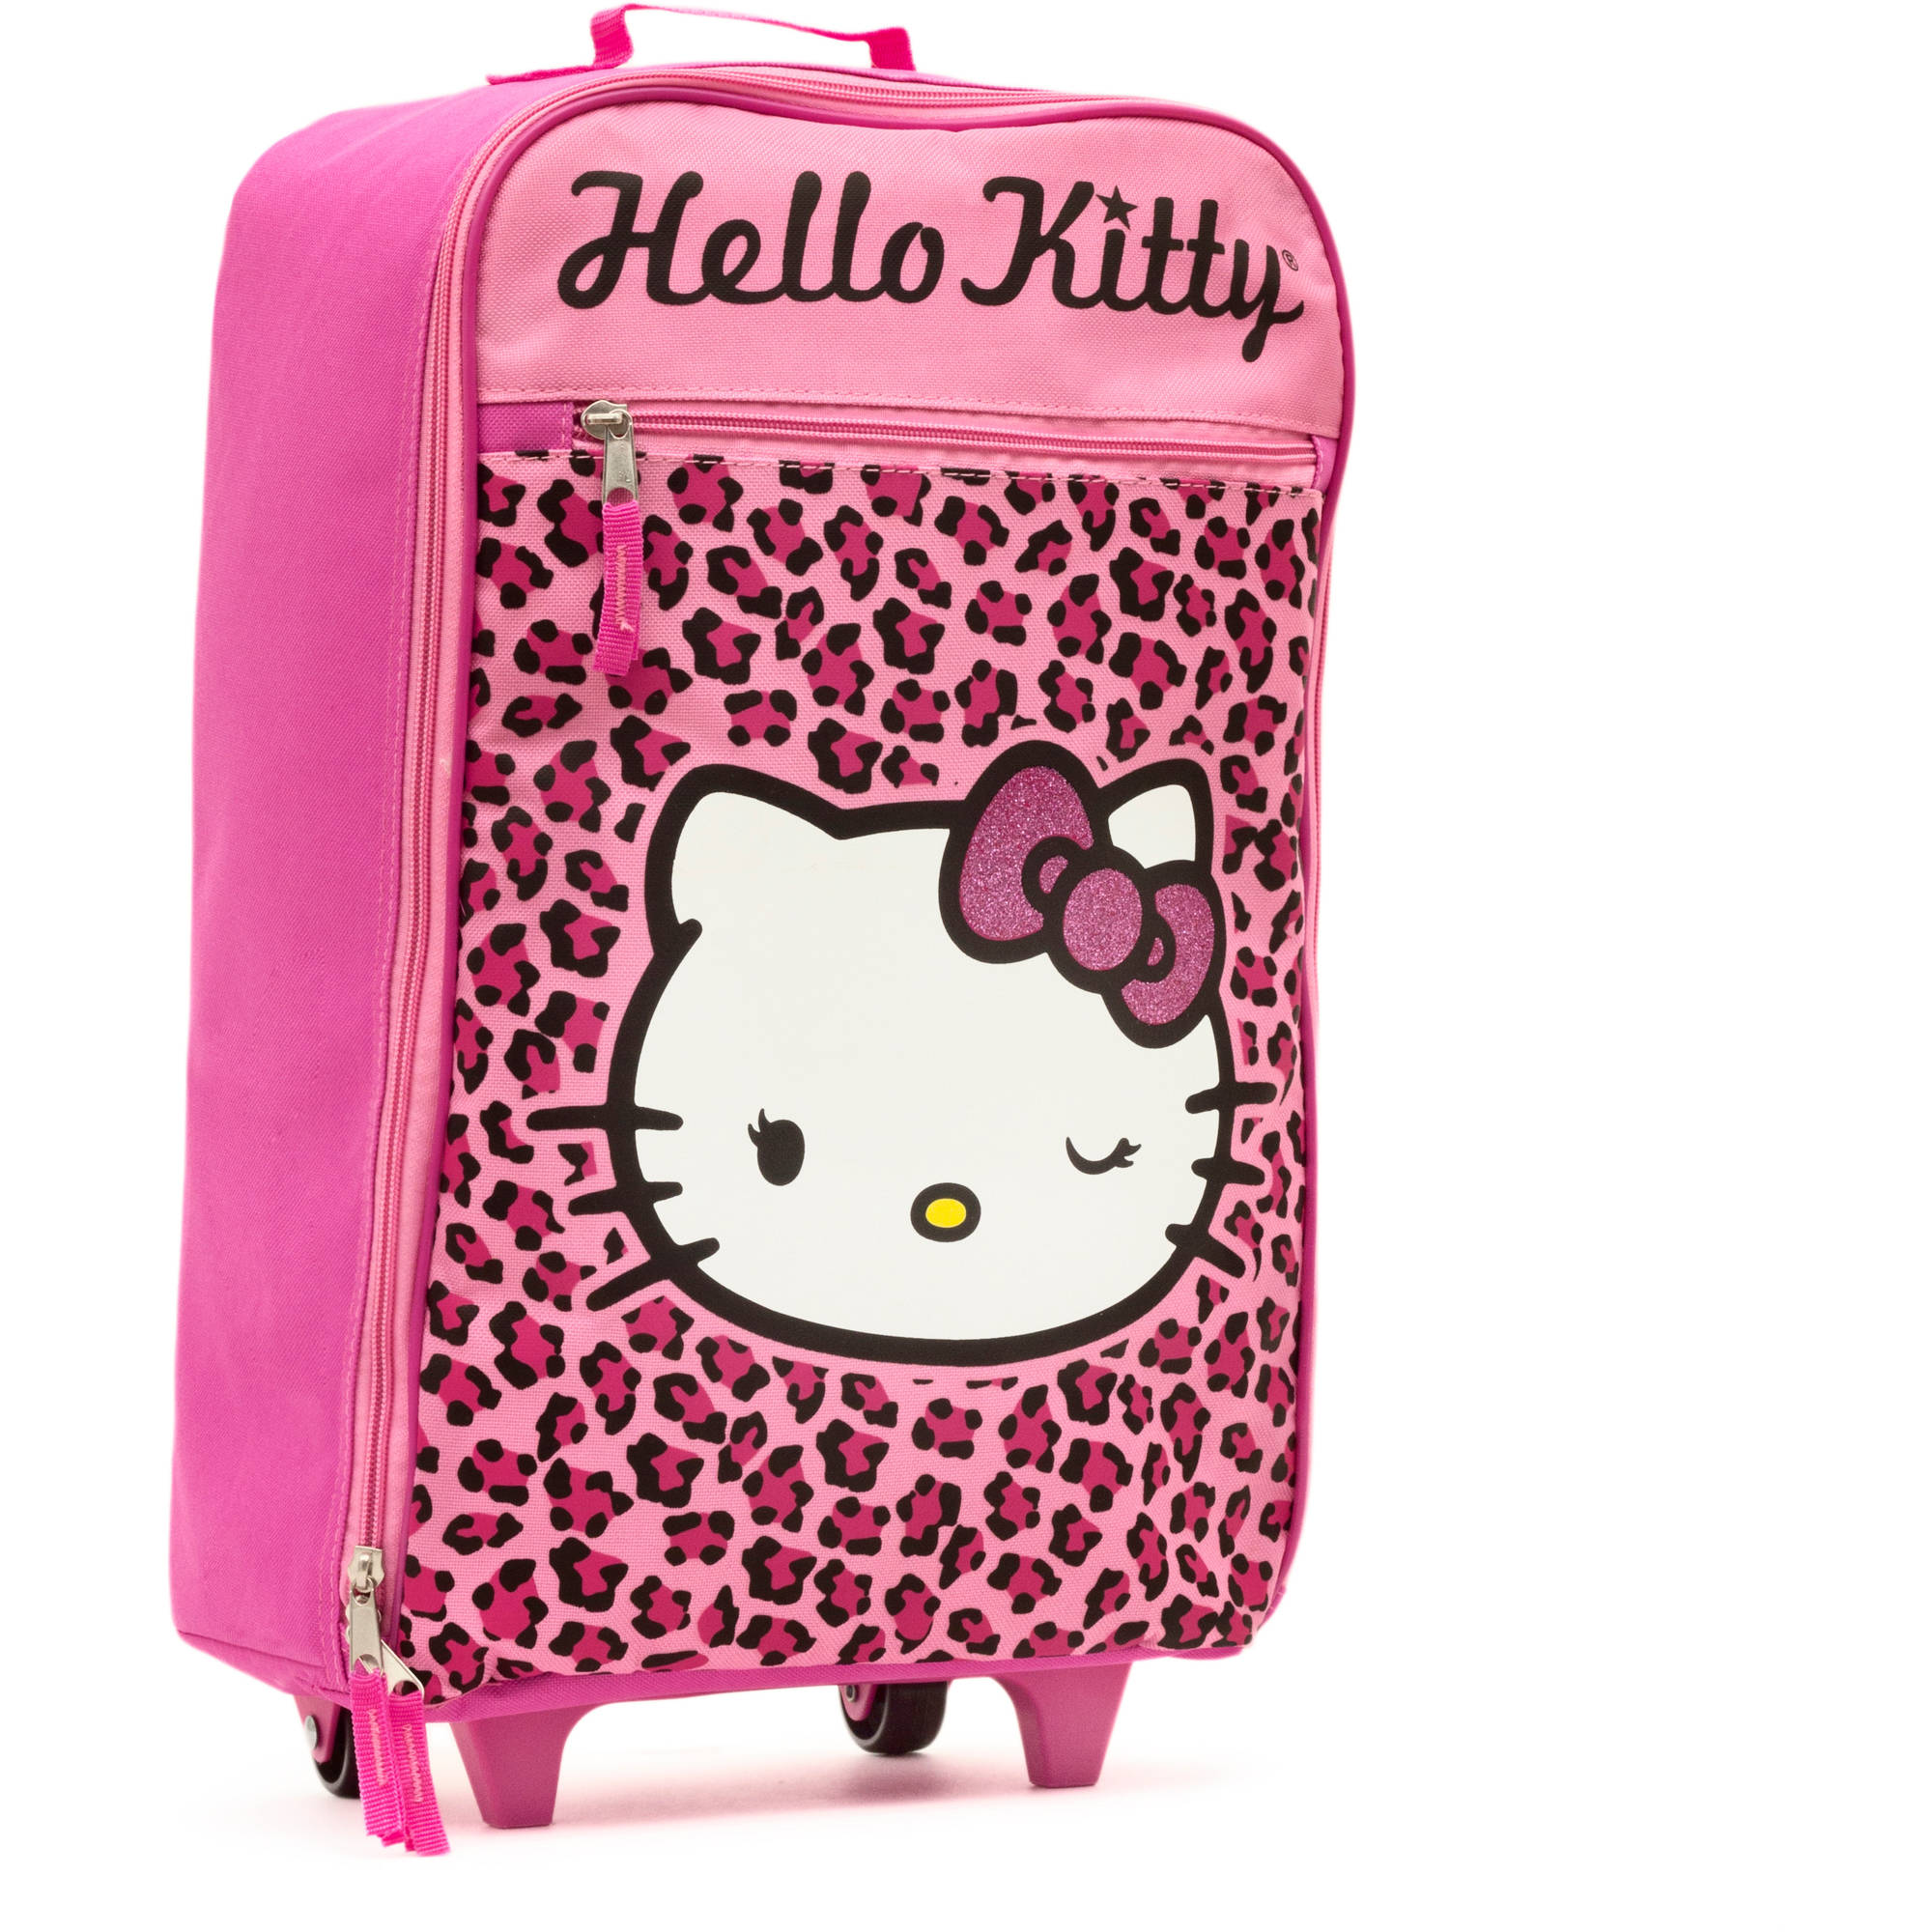 Hello Kitty Pilot Case, Pink